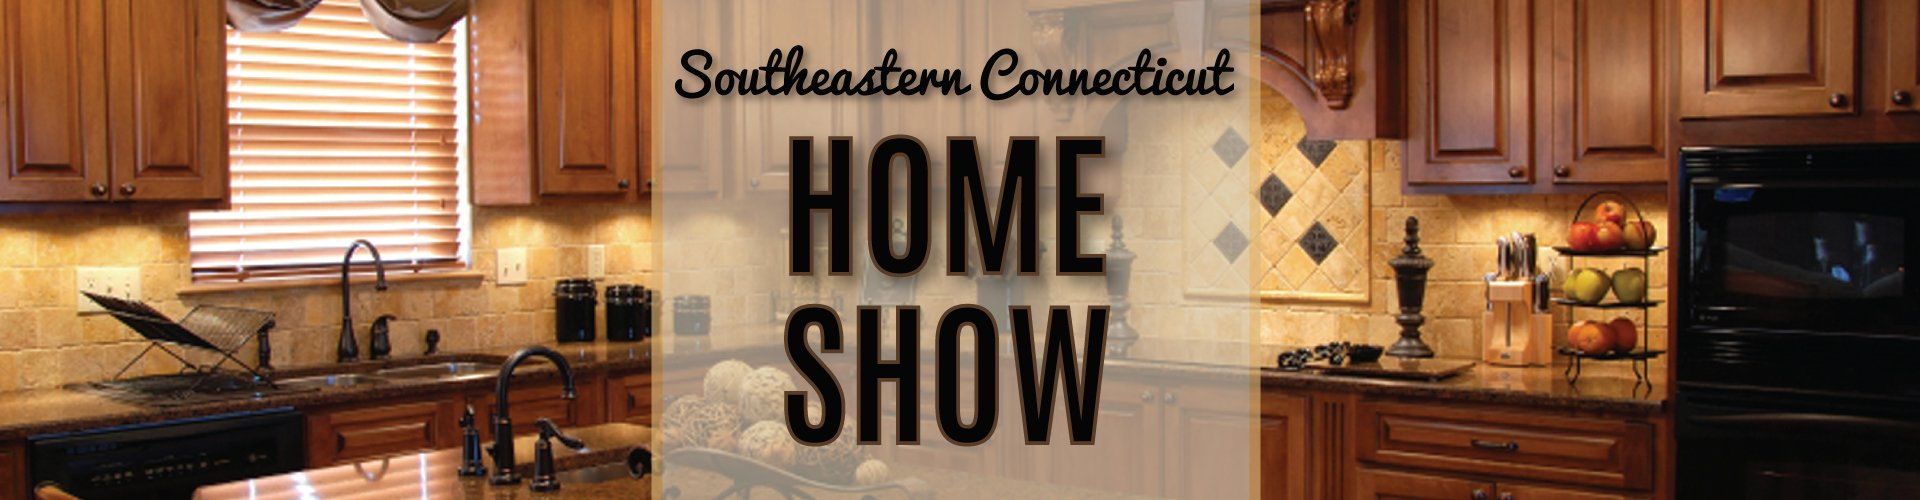 Kitchen cabinets eastern ct - Southeastern Ct Home Show